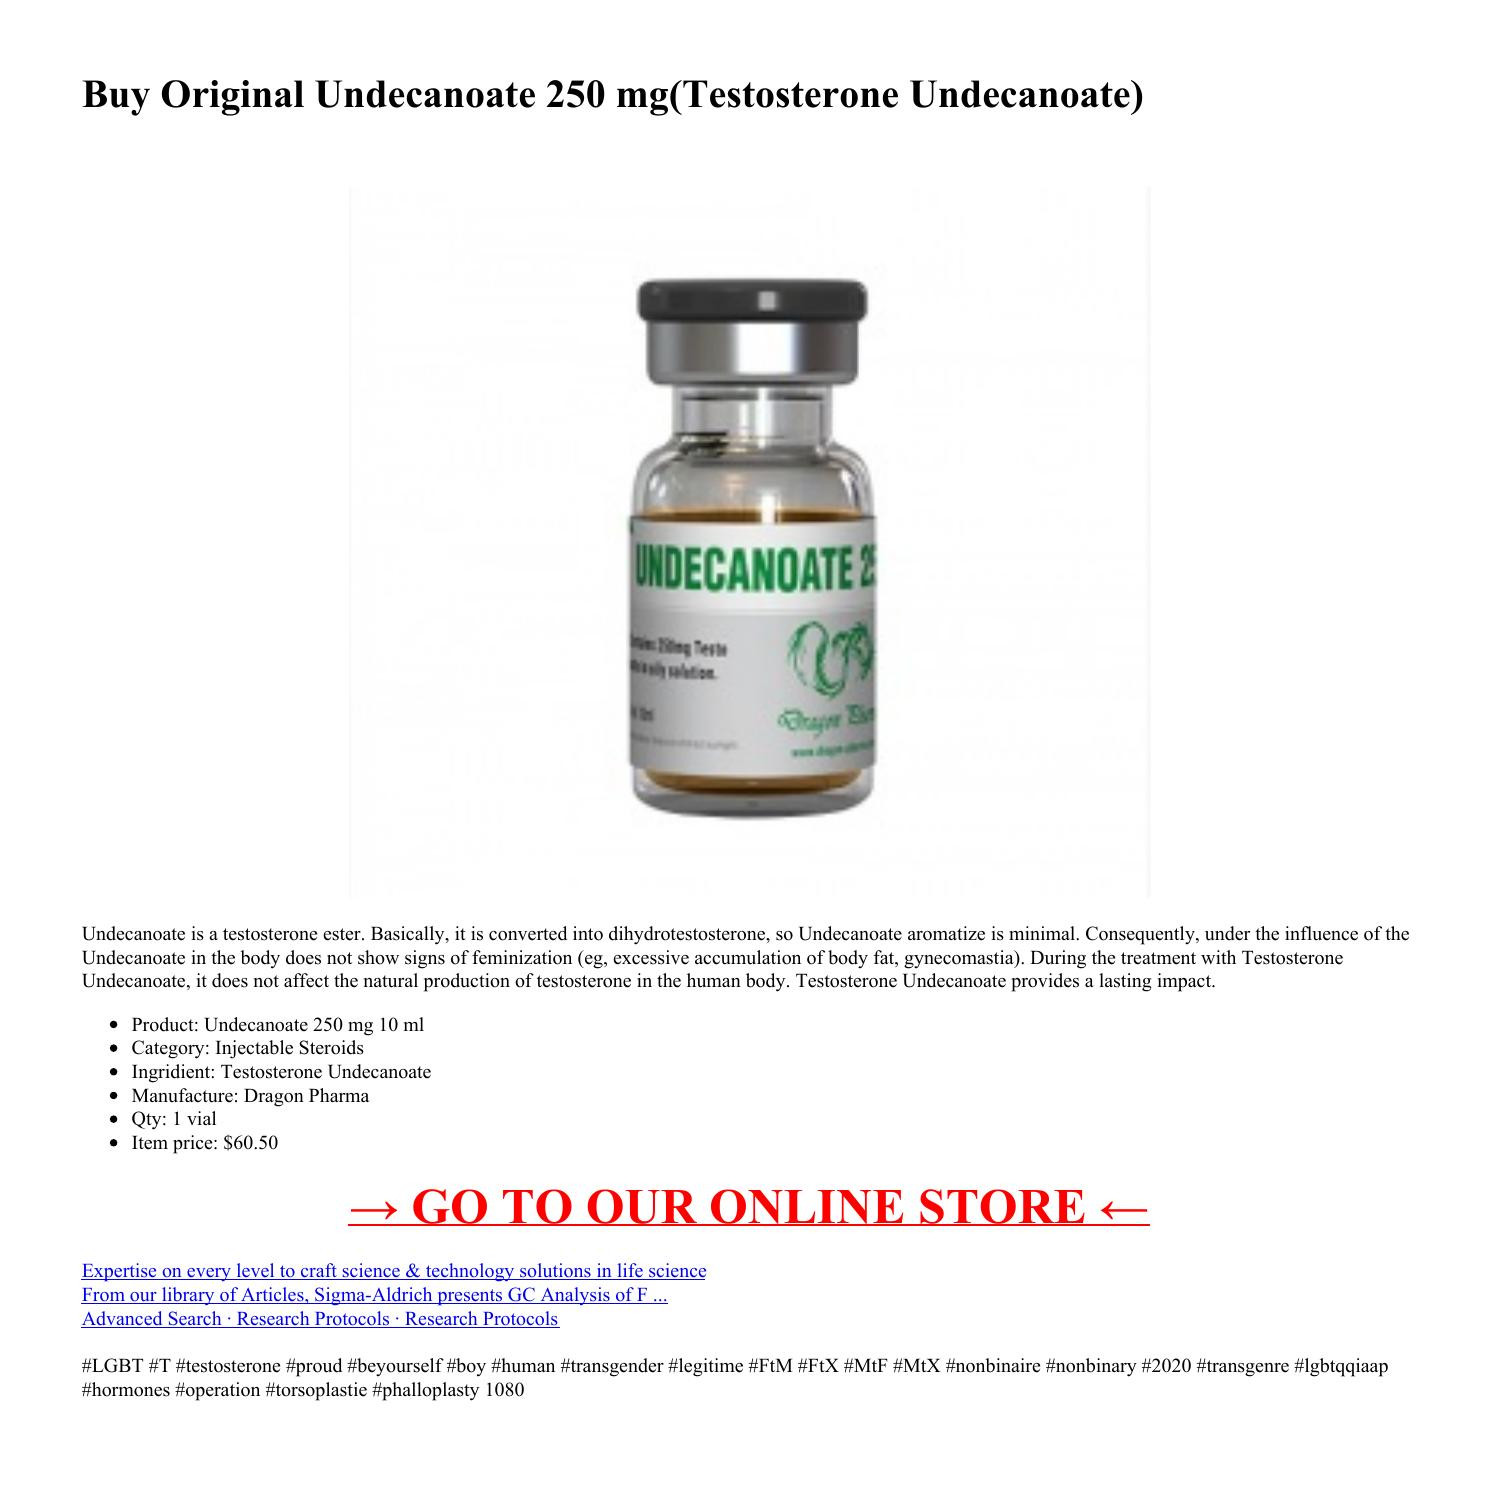 Buy Original Undecanoate 250 mg(Testosterone Undecanoate) by Dragon Pharma in USA - Injectable